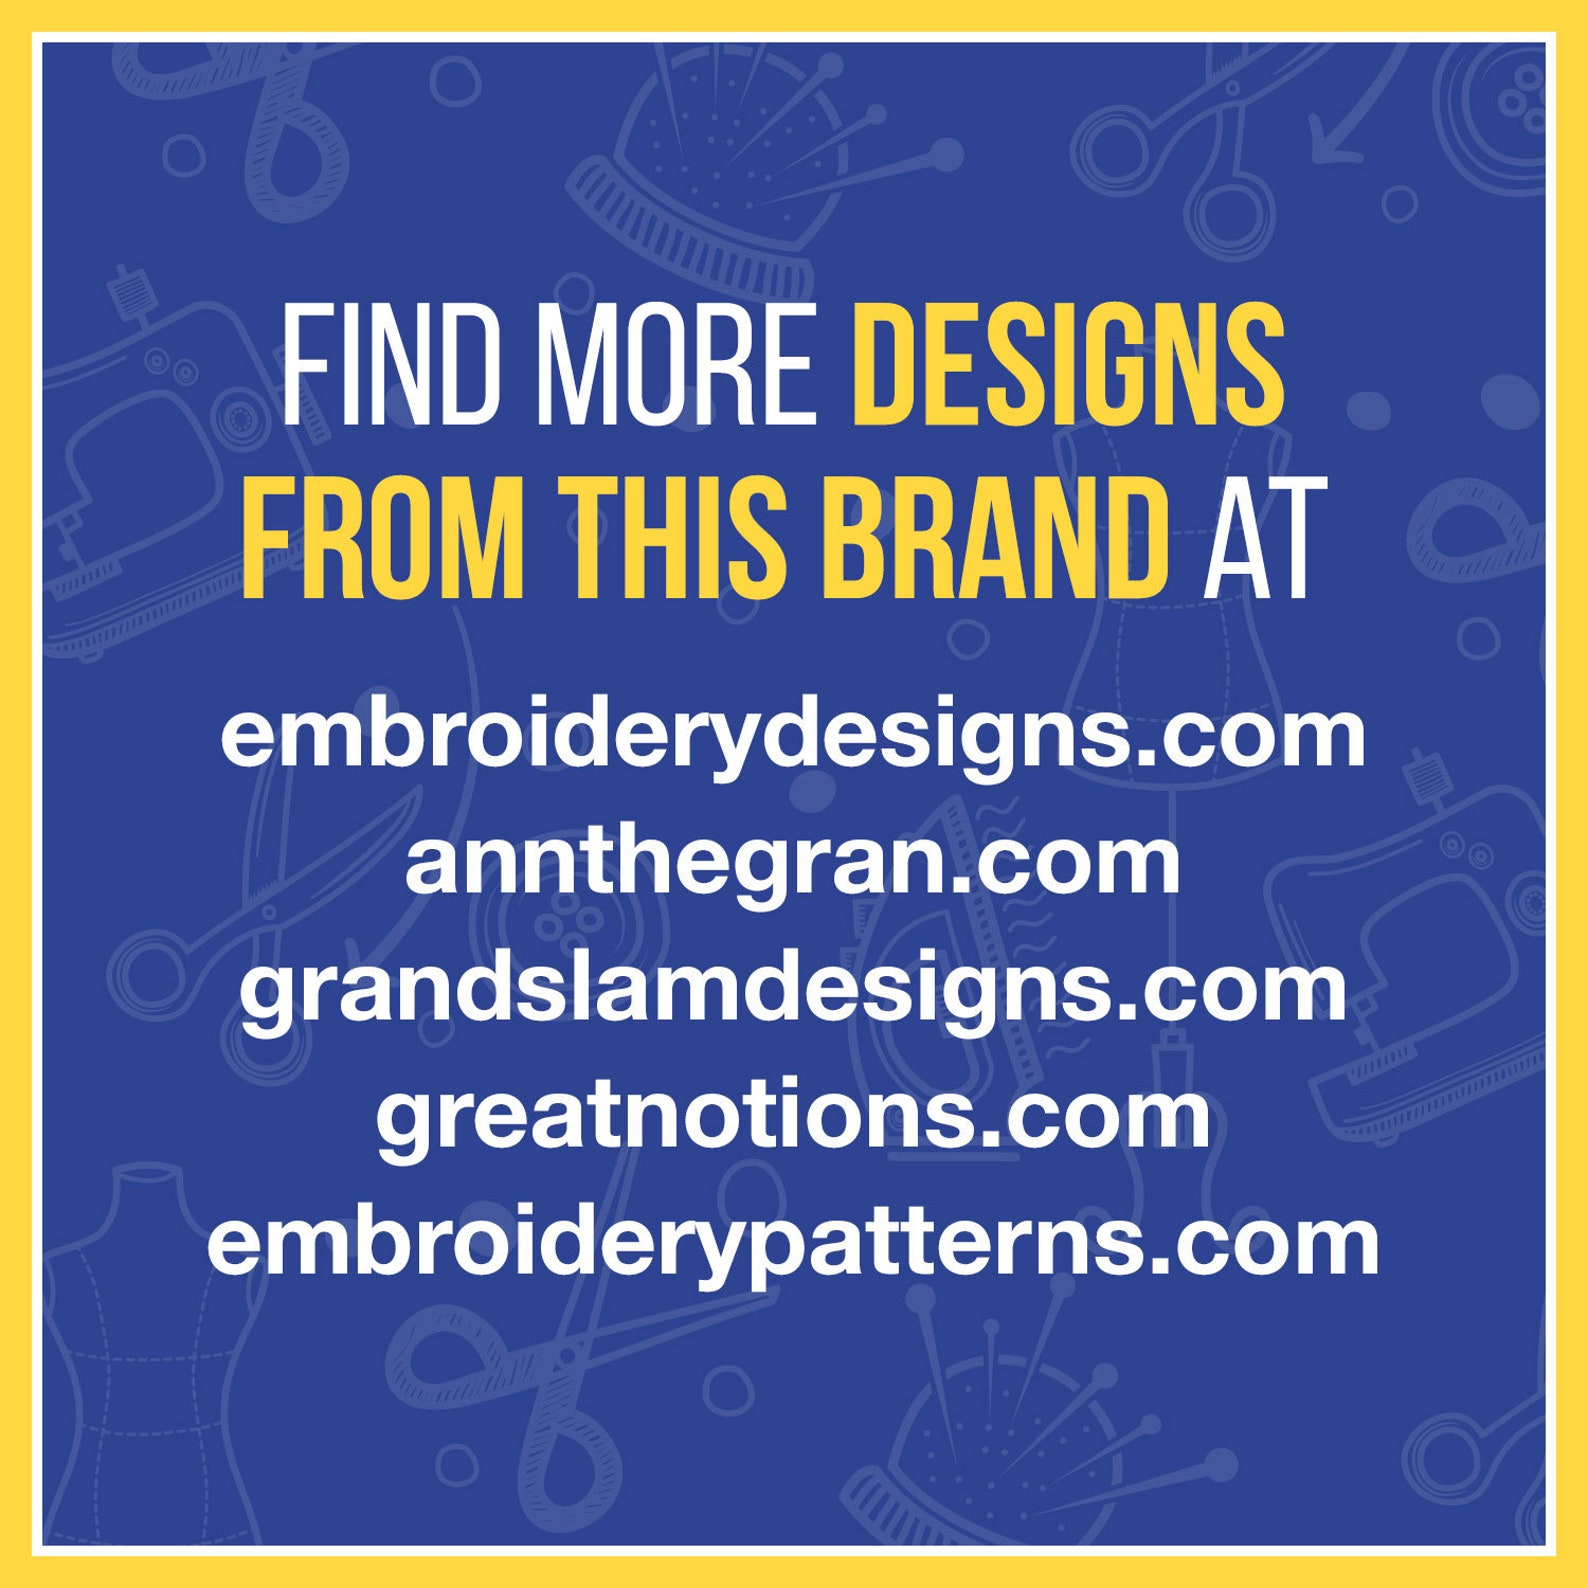 ballet slippers - machine embroidery design, embroidery designs, machine embroidery, embroidery patterns, embroidery files, inst